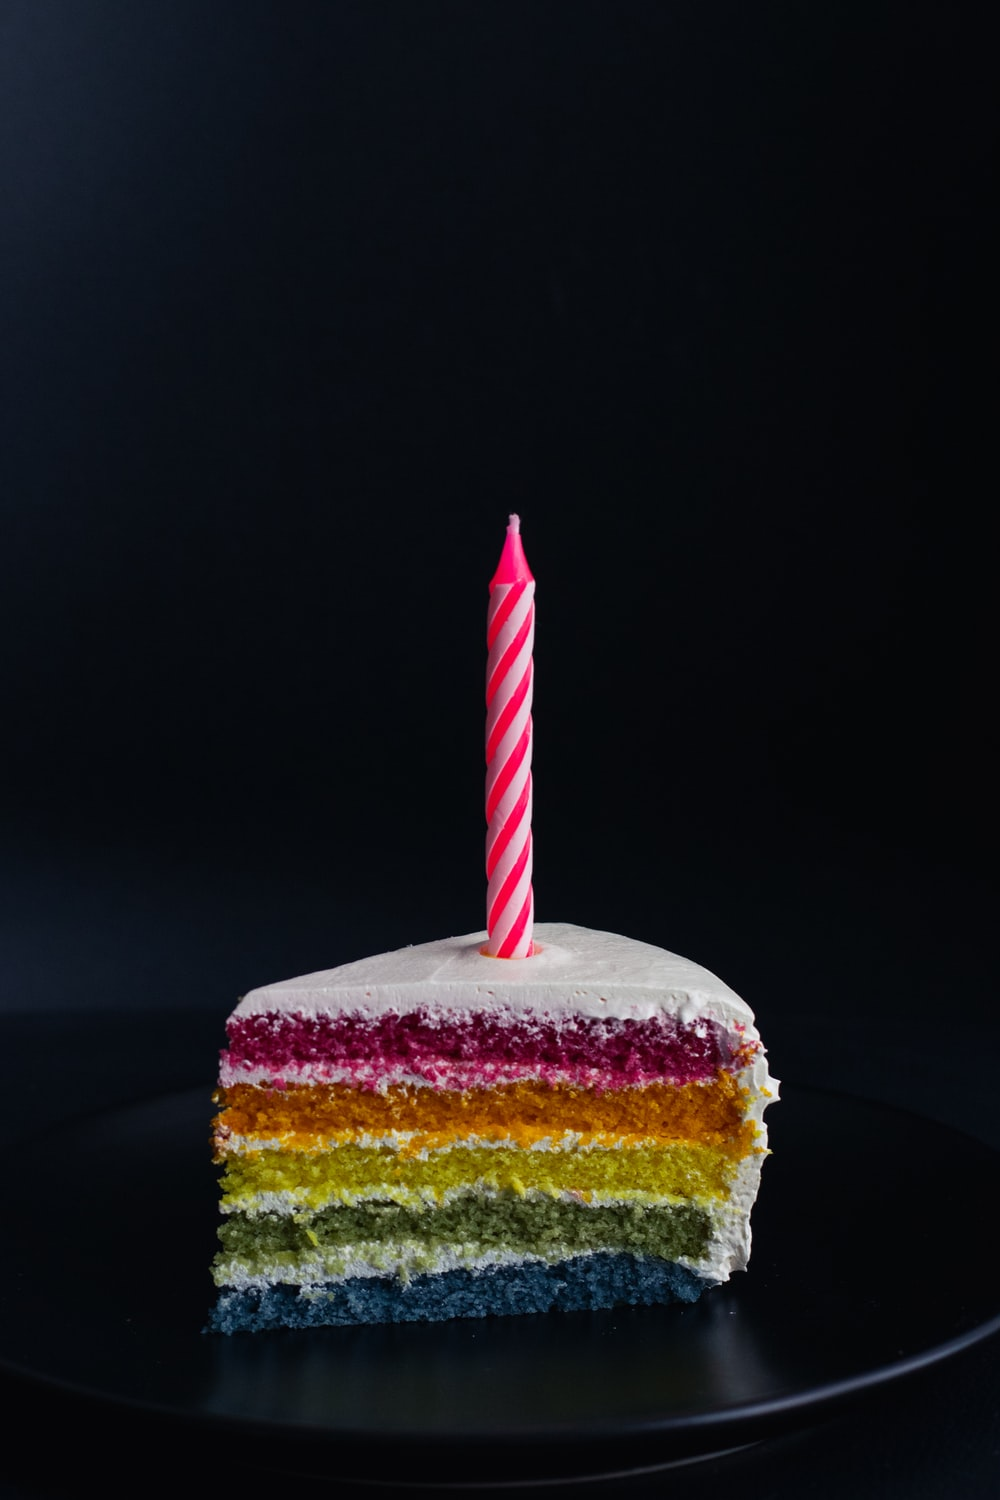 slice of cake with candle on top